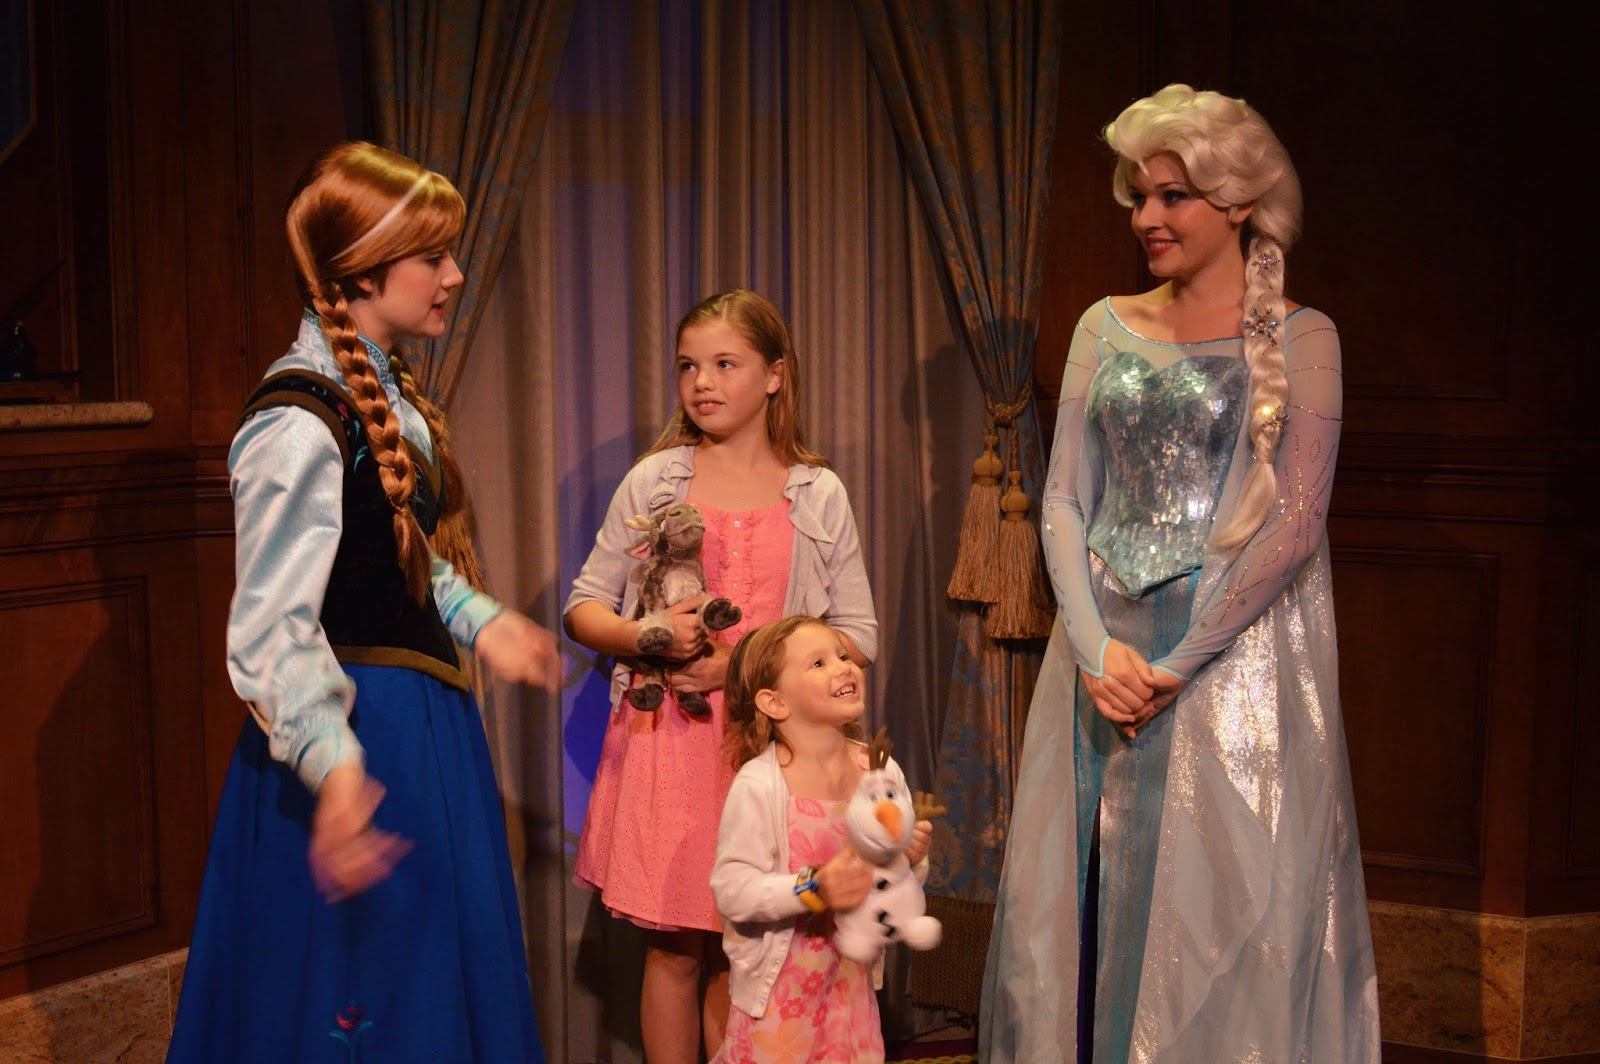 All around orlando anna elsa from frozen meet greet debuts with anna elsa from frozen meet greet debuts with fast pass at magic kingdom 42014 kristyandbryce Gallery